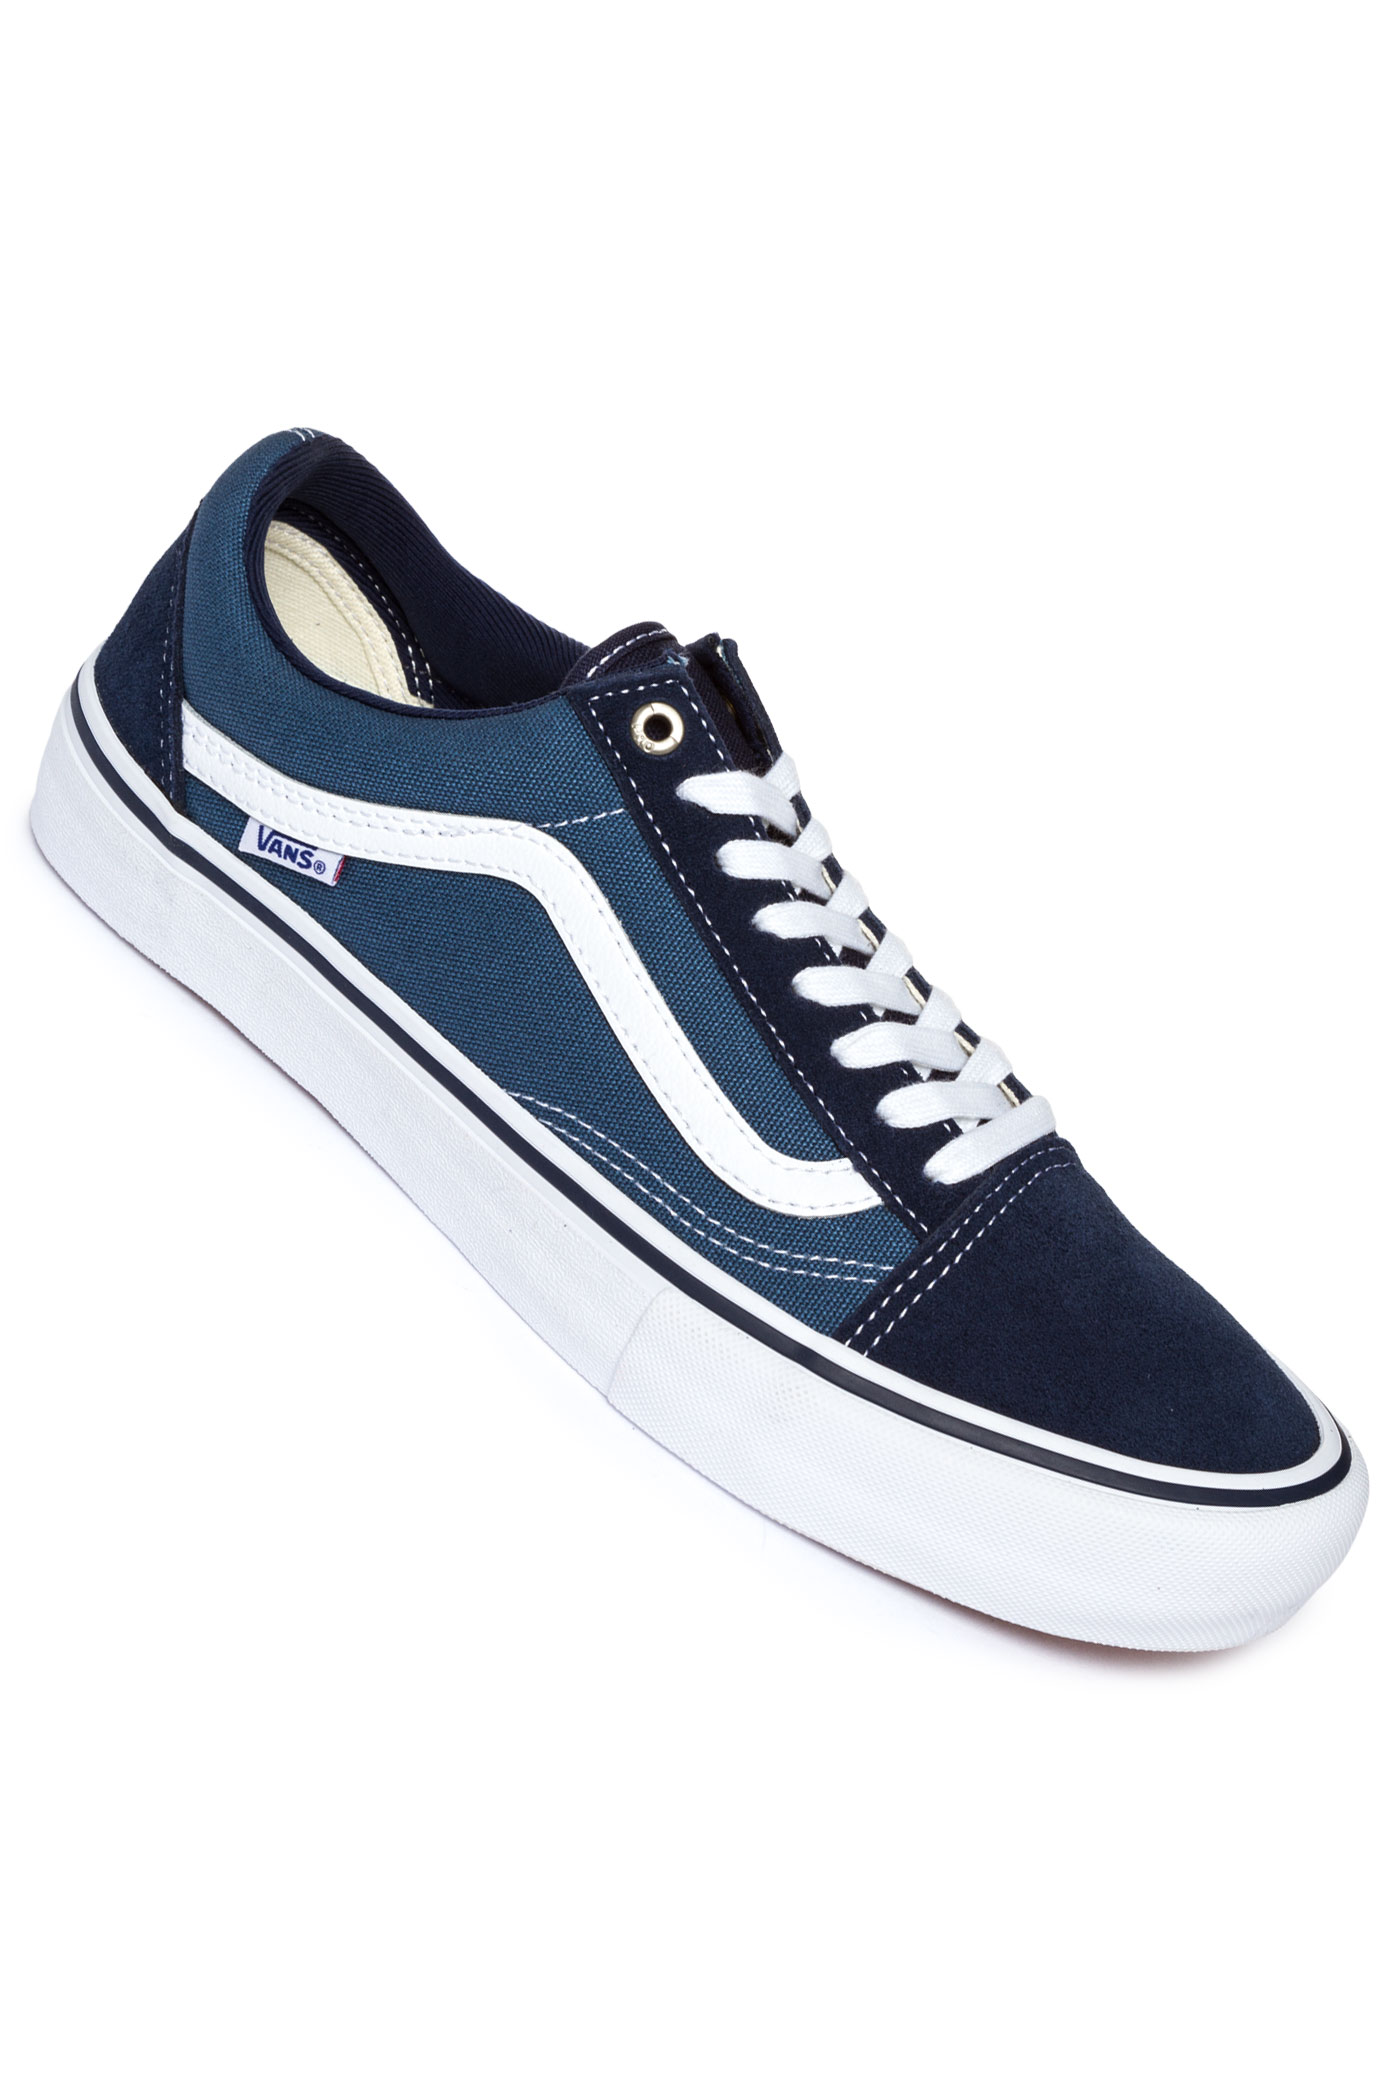 vans old skool pro schuh navy stv navy white kaufen bei skatedeluxe. Black Bedroom Furniture Sets. Home Design Ideas